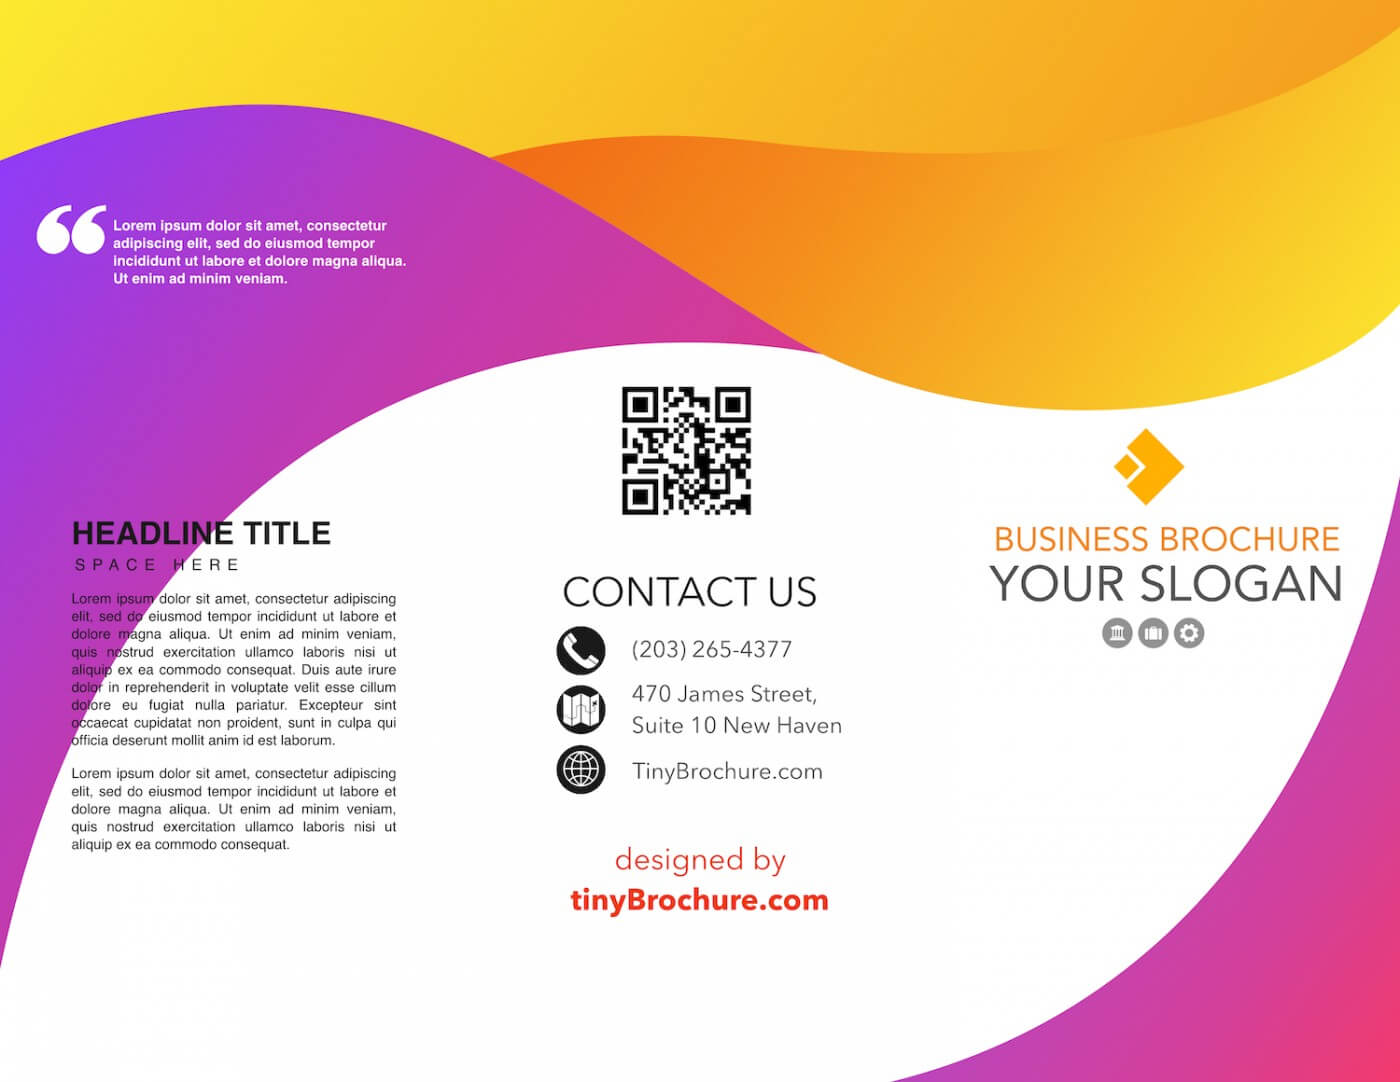 028 Template Ideas Google Docs Business Plan Pamphlet Fresh With Science Brochure Template Google Docs